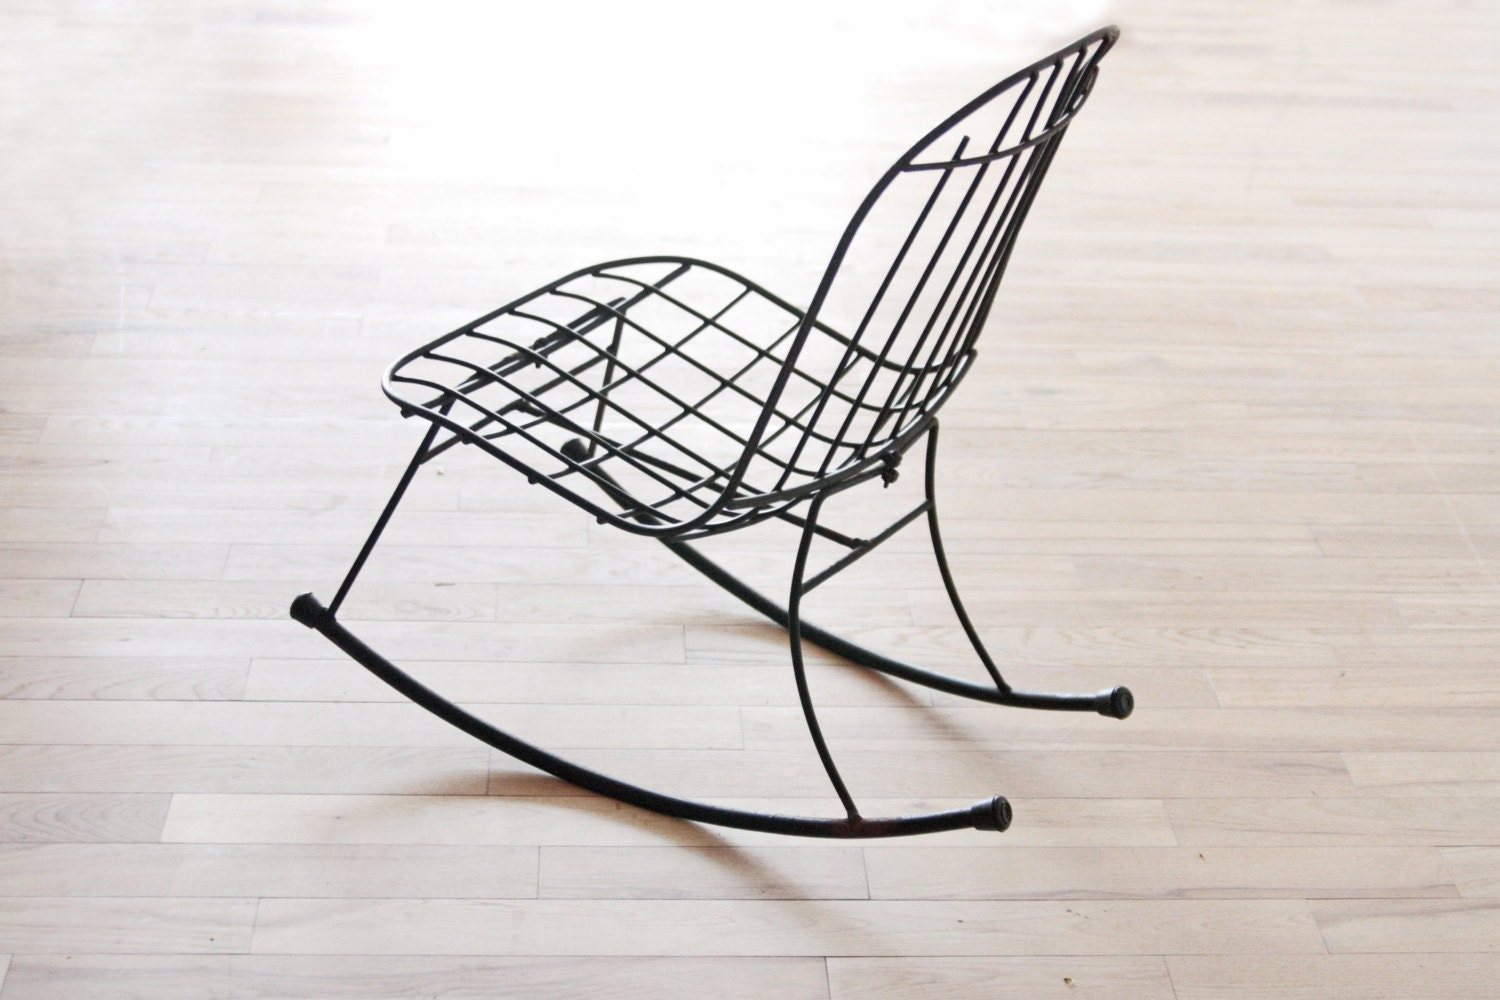 Wire Rocking Chair Wrought Iron Patio Chair – Etsy finds